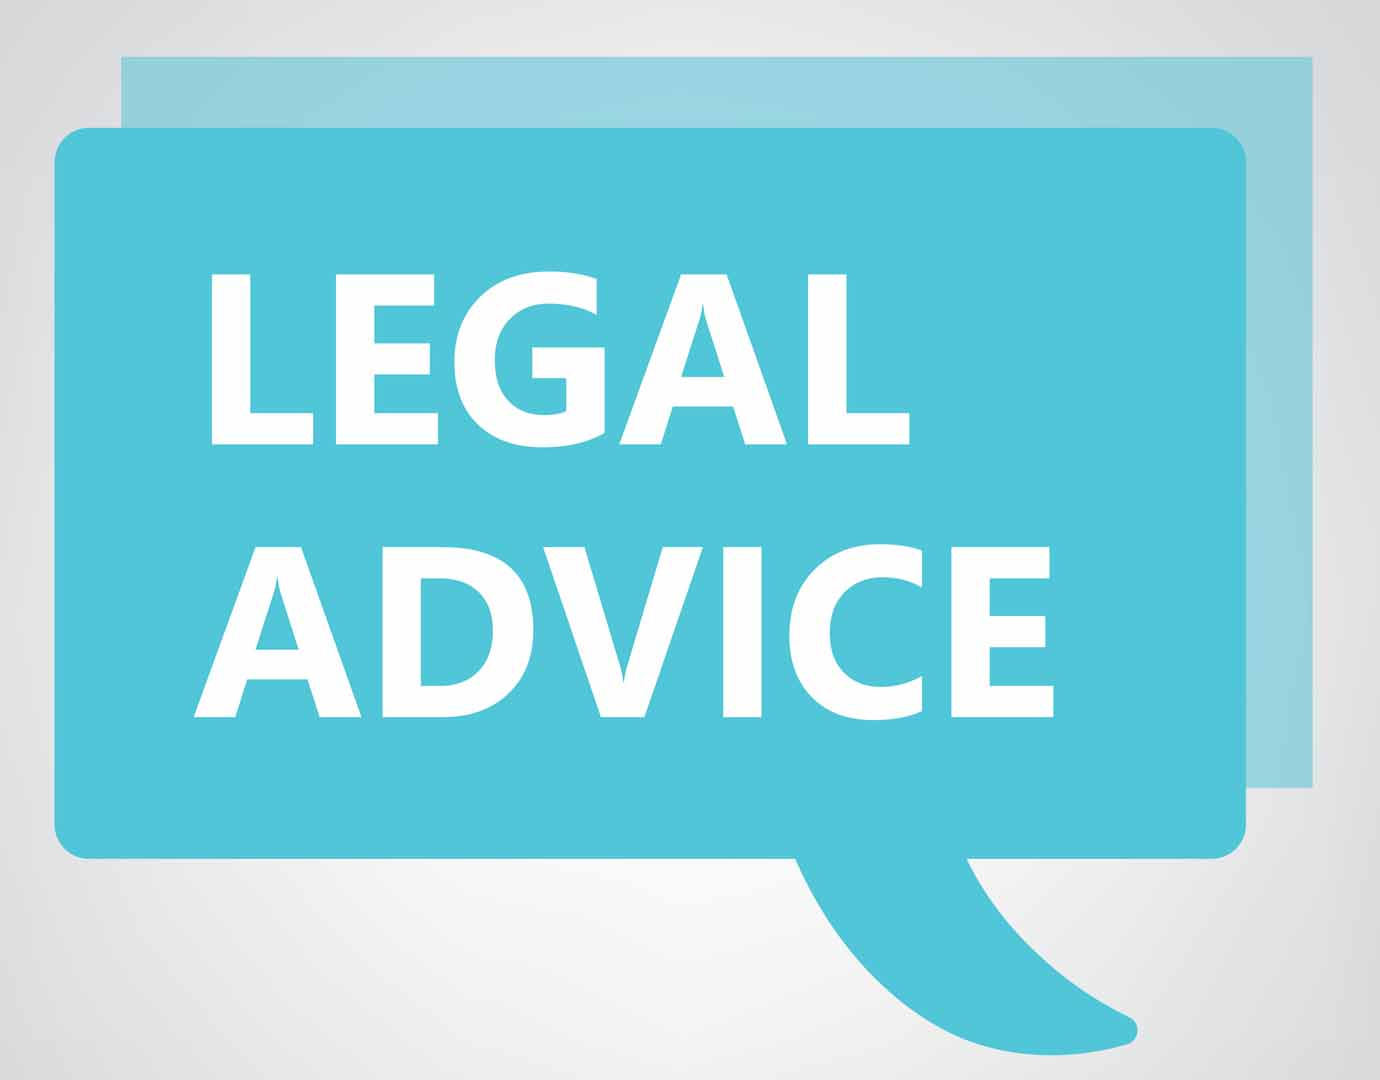 Legal advice image